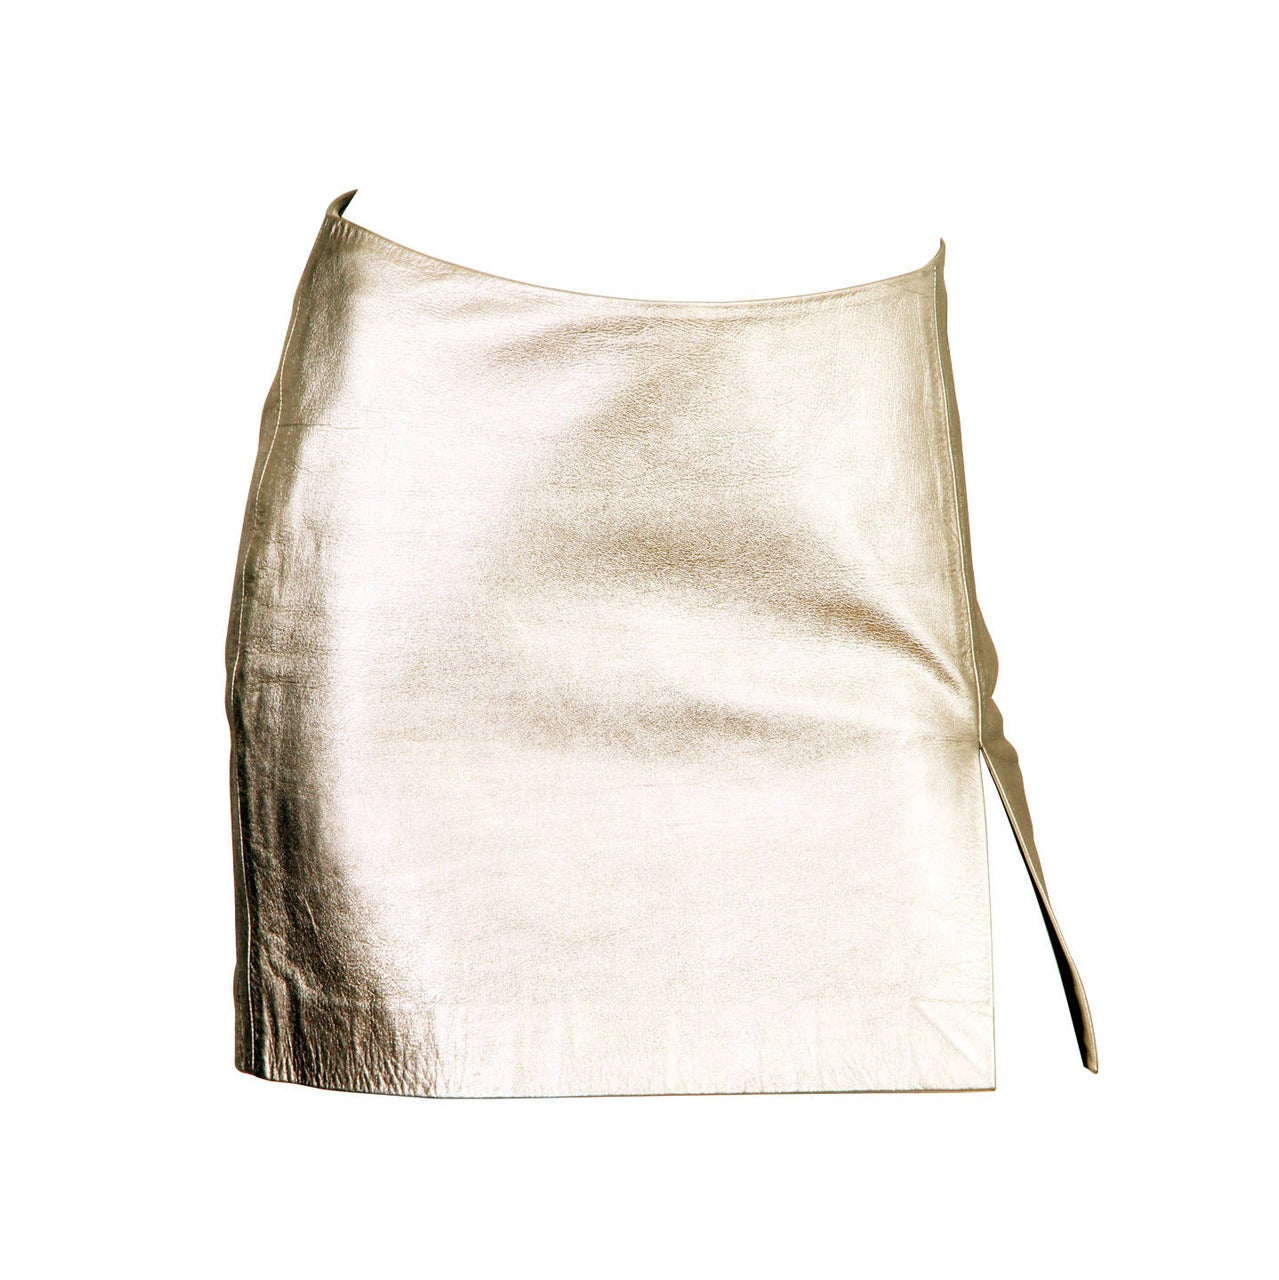 Iconic Documented 1994 Supermodel Gianni Versace Couture Silver Leather Skirt For Sale